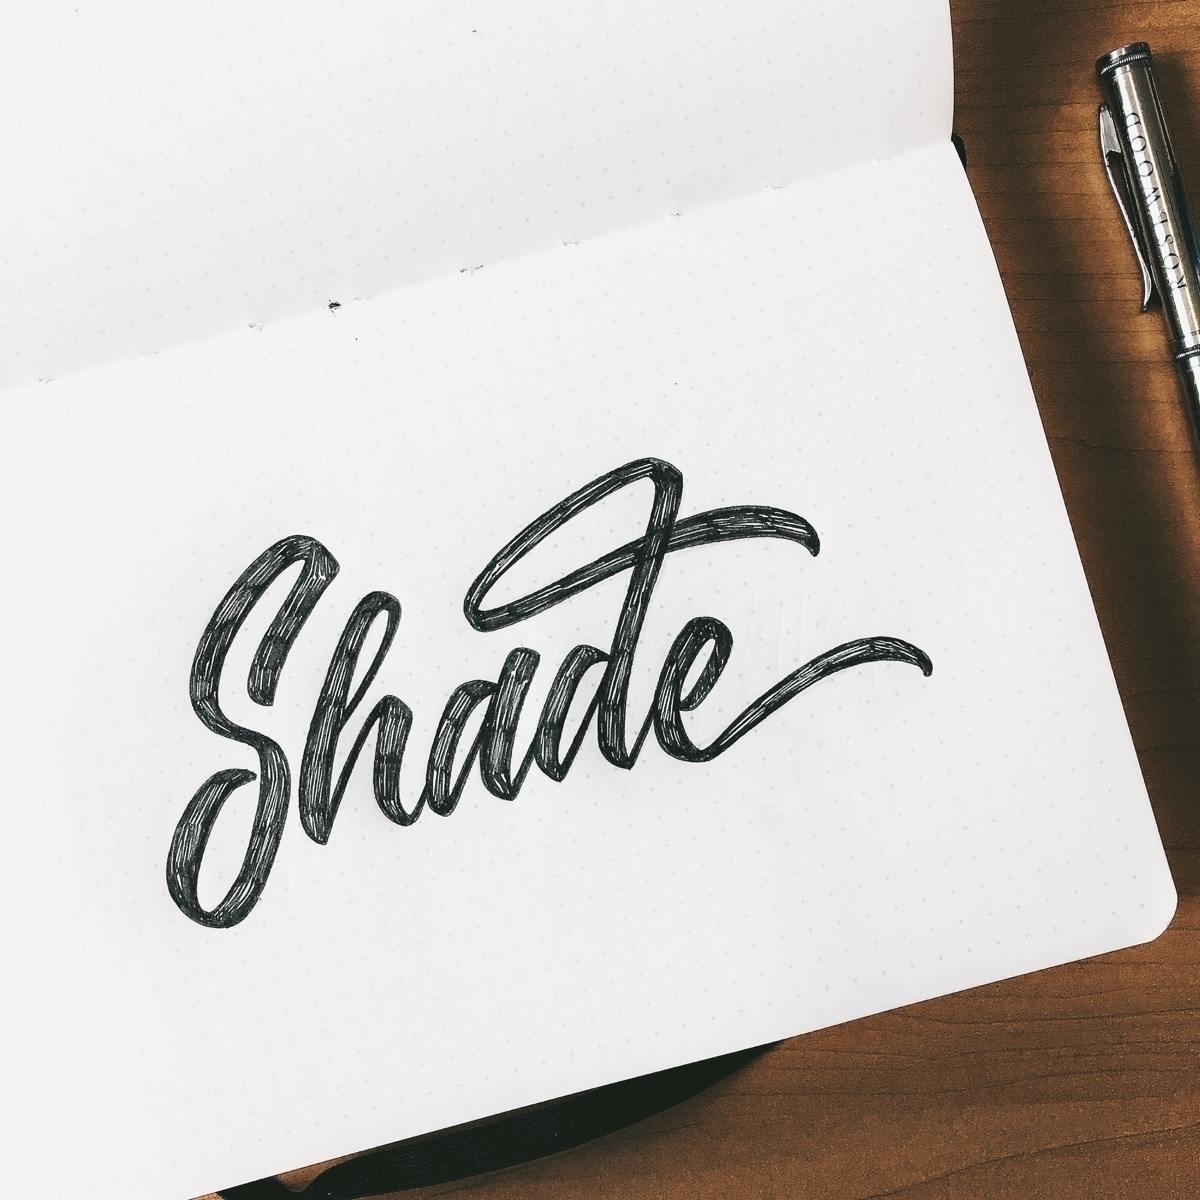 Throwing shade today - lettering - chuckchai | ello